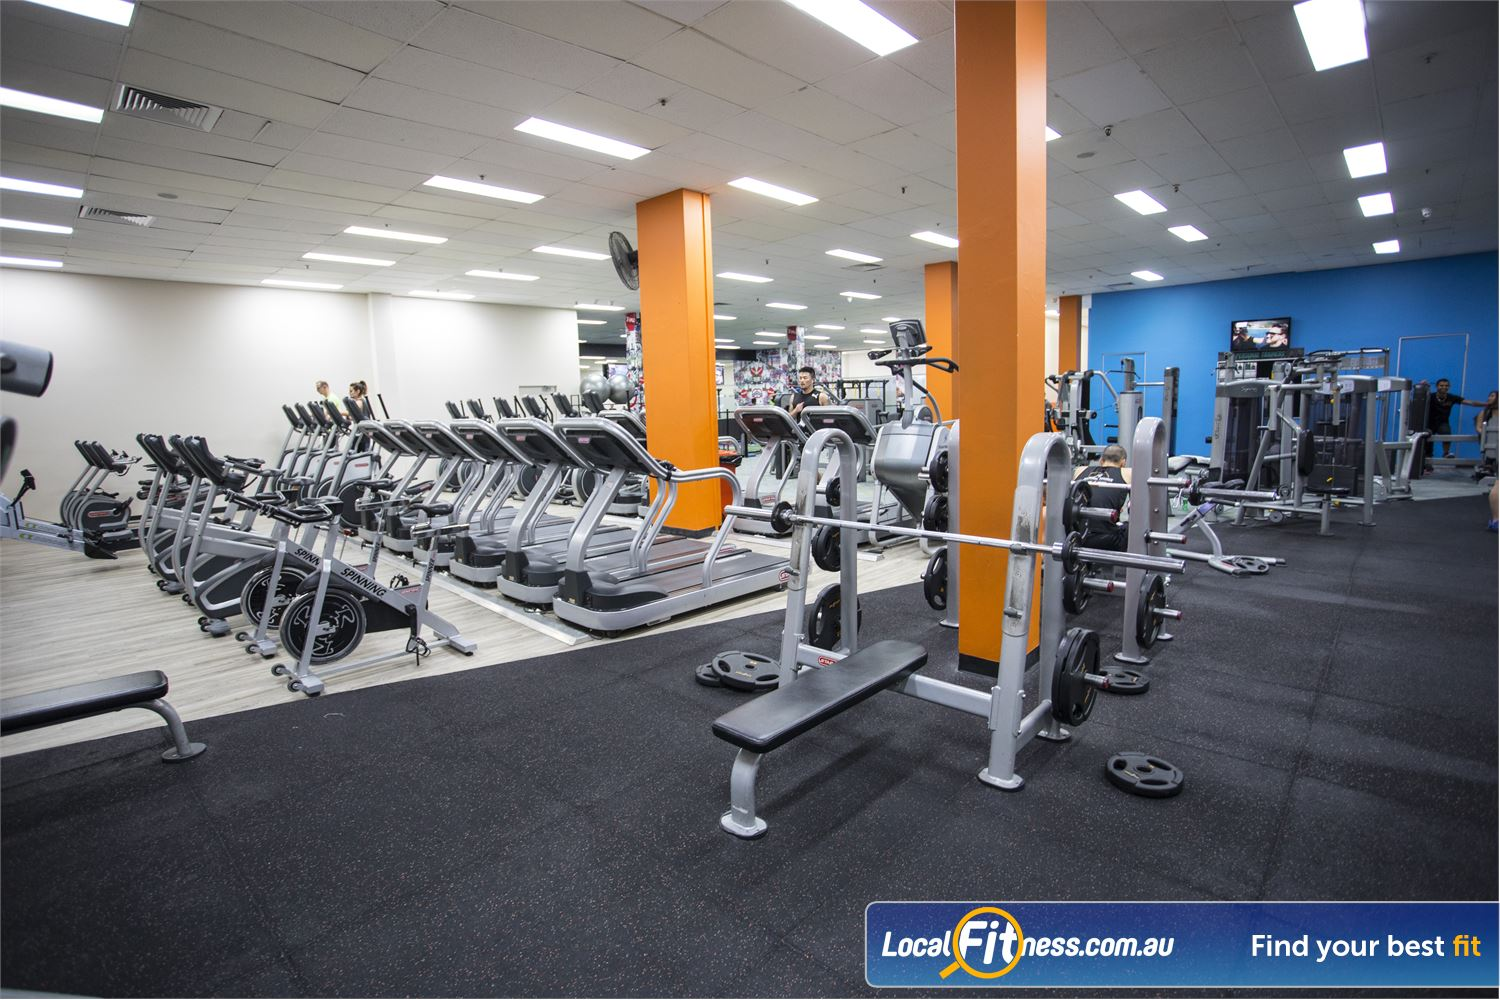 Fit n Fast Sydney Welcome to FNF Liverpool St Sydney gym.